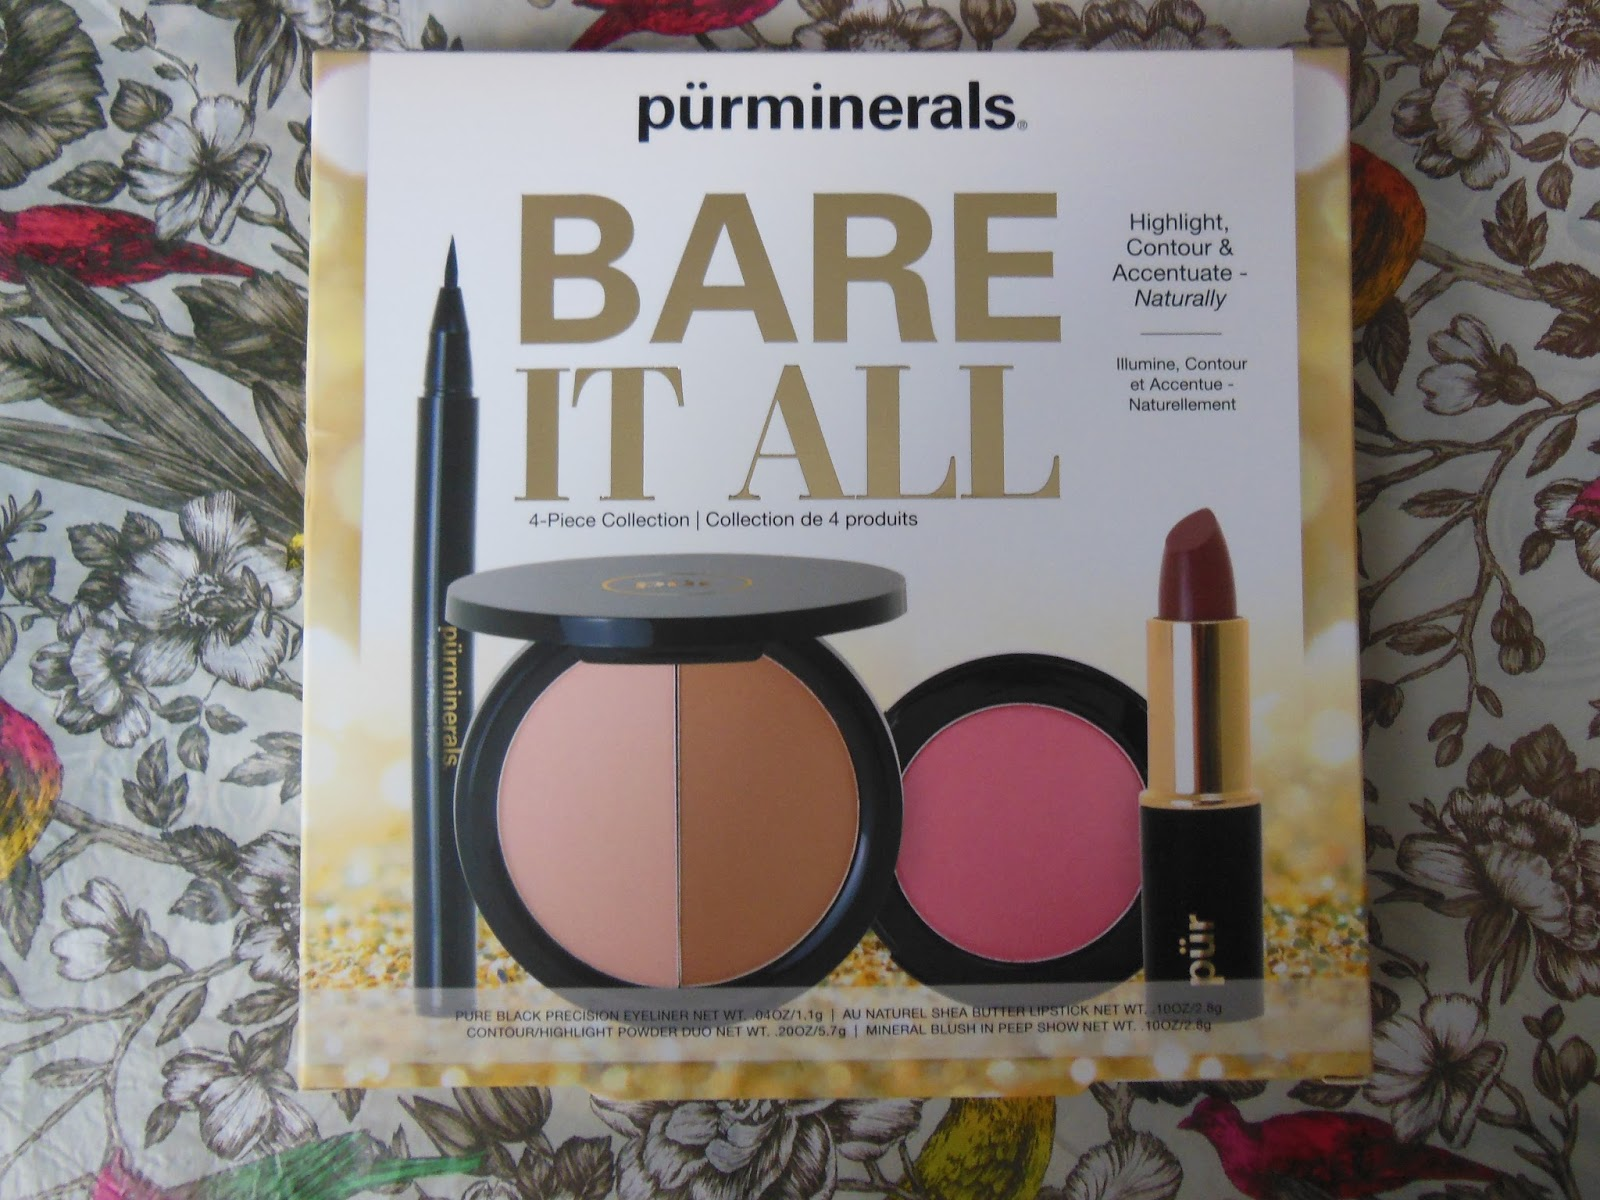 Pur Minerals Bare It All collection